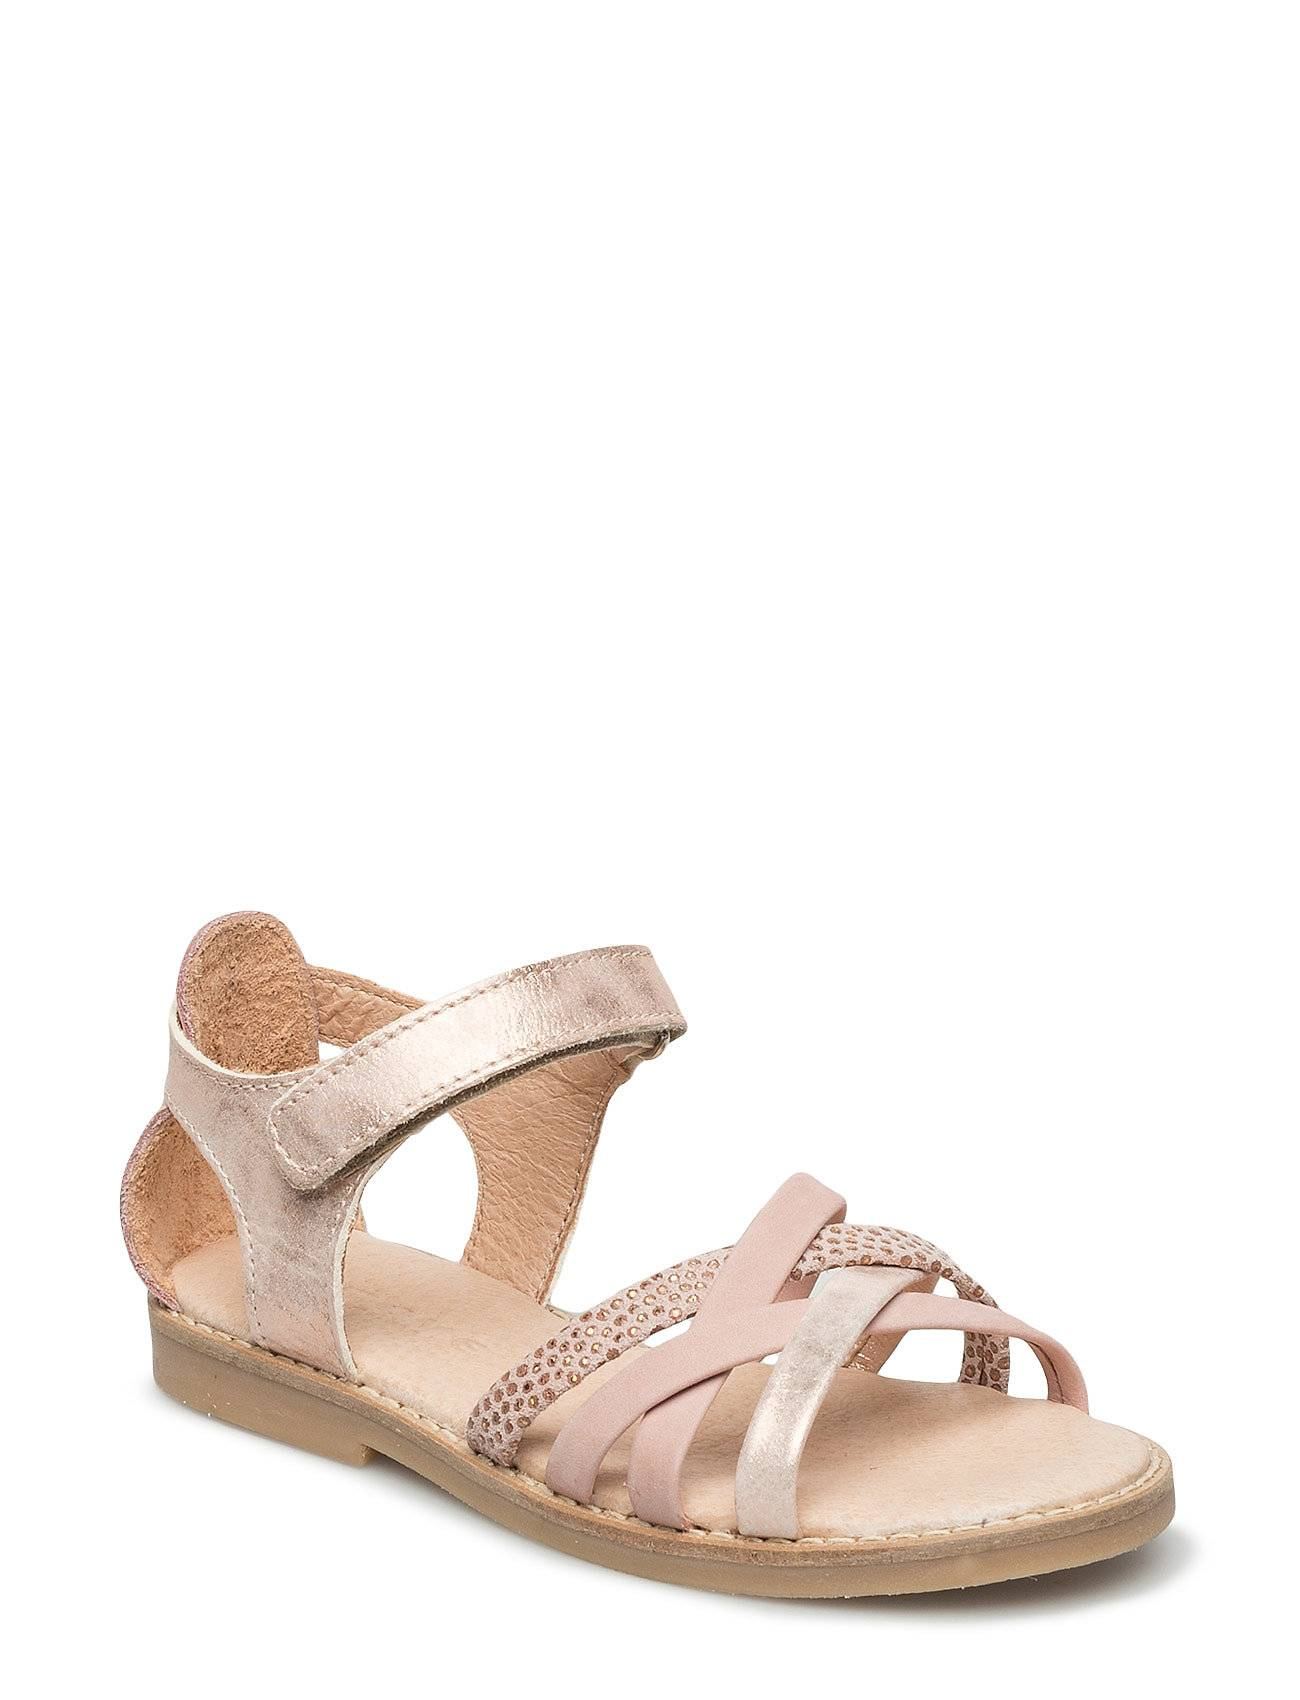 Move by Melton Girls Strap Sandal